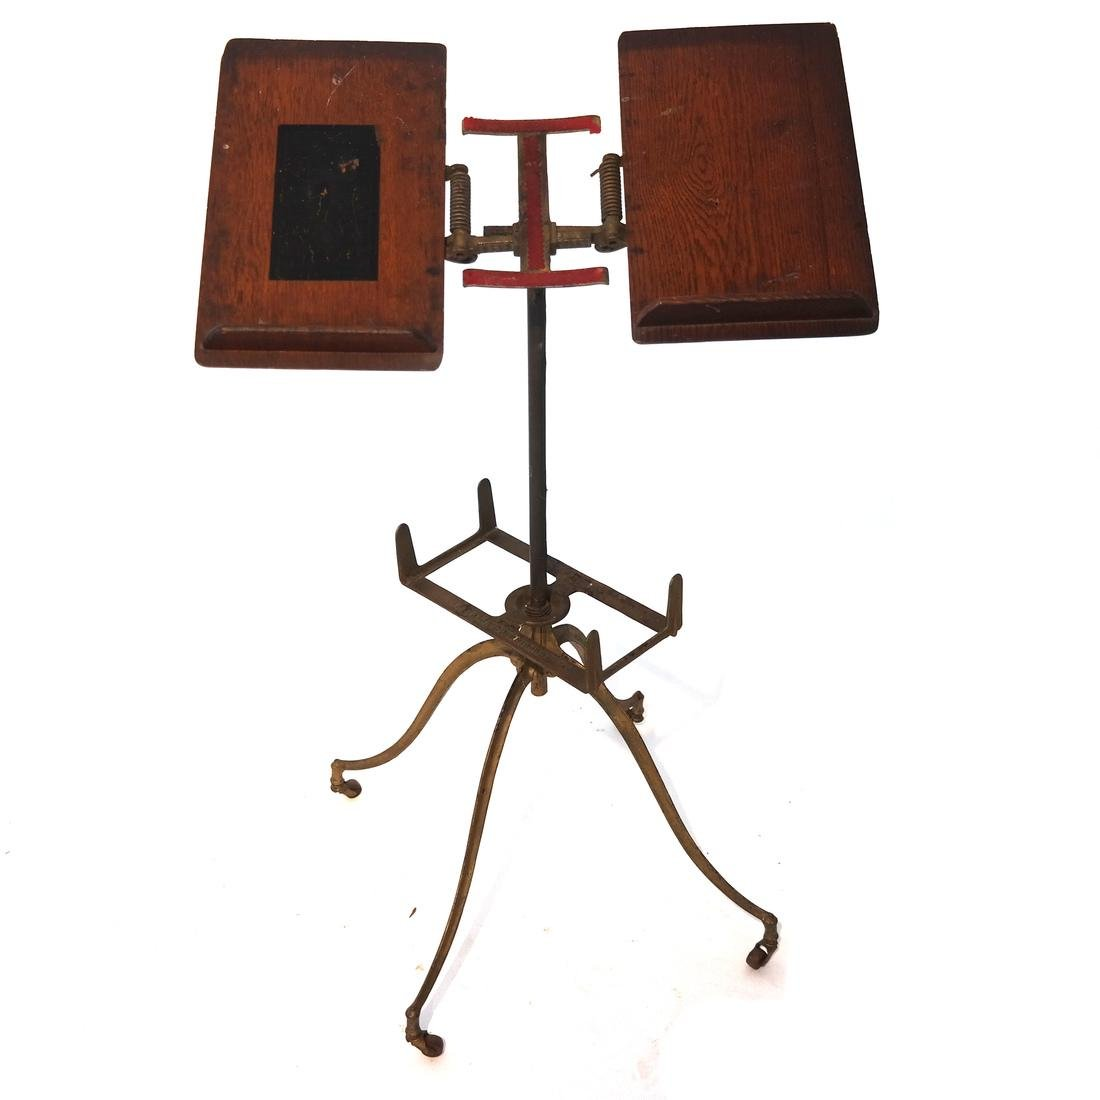 Antique Iron & Wood Bookstand